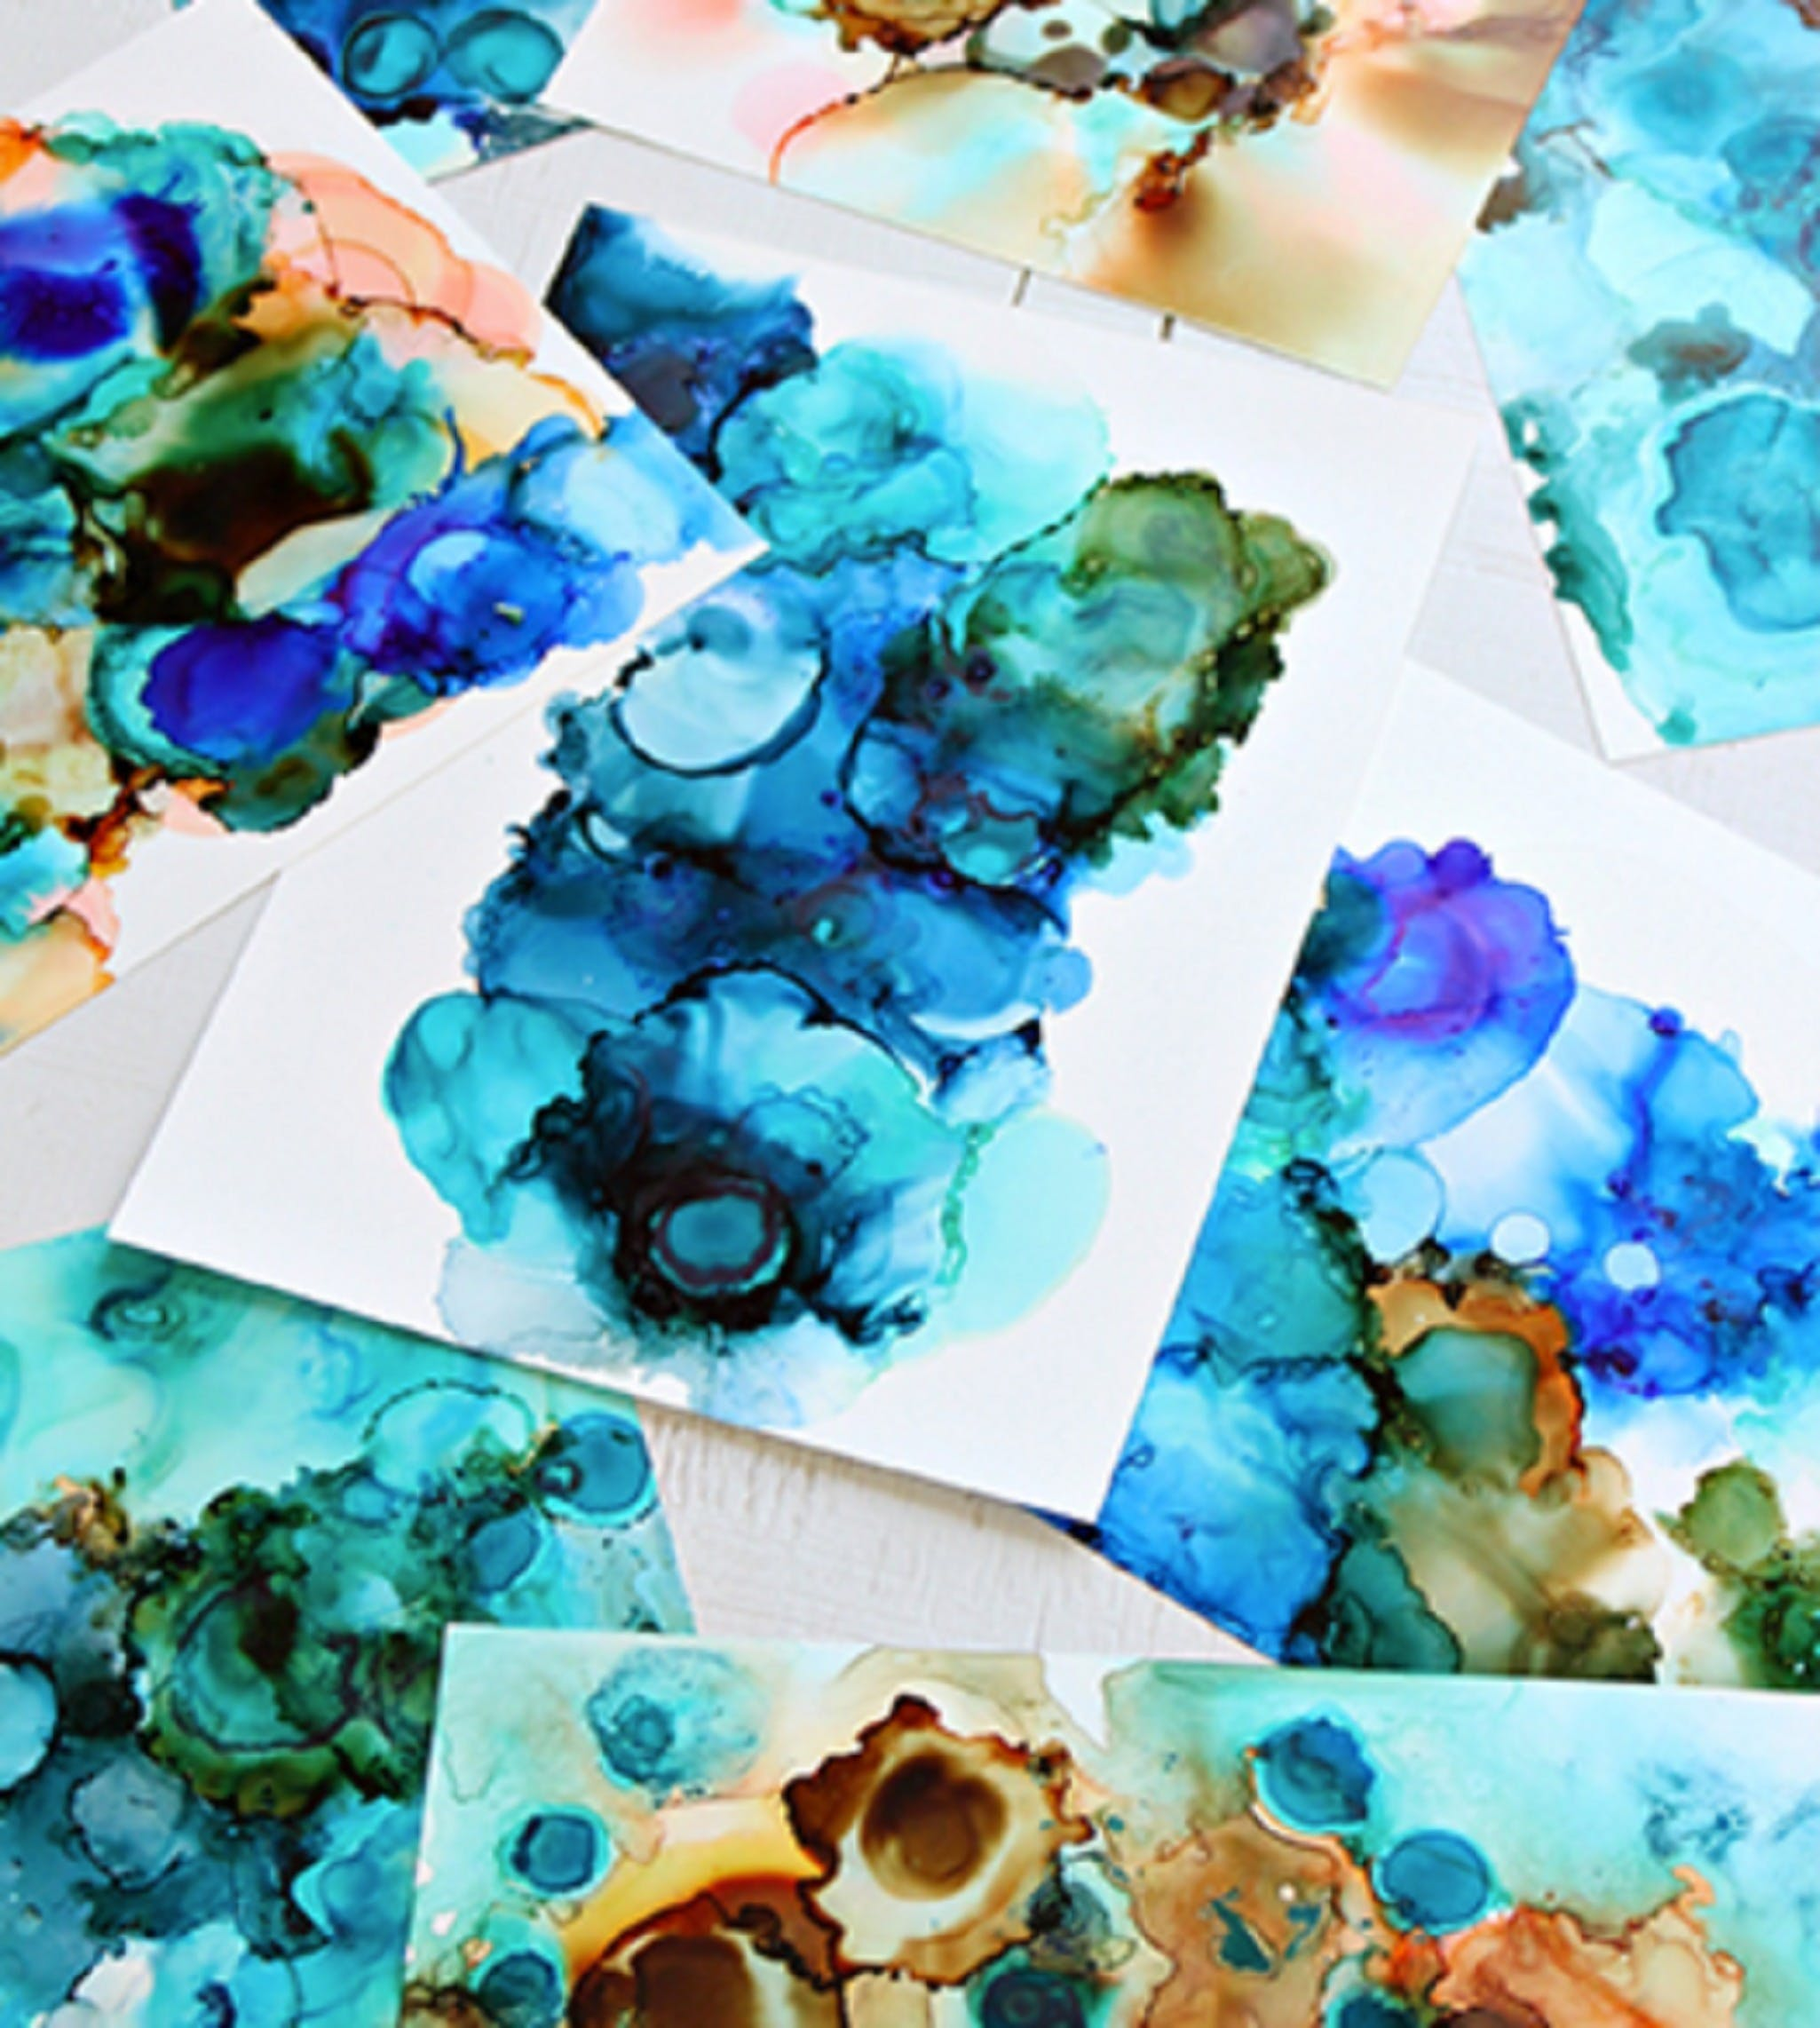 Alcohol Ink Art Class - Accommodation Melbourne